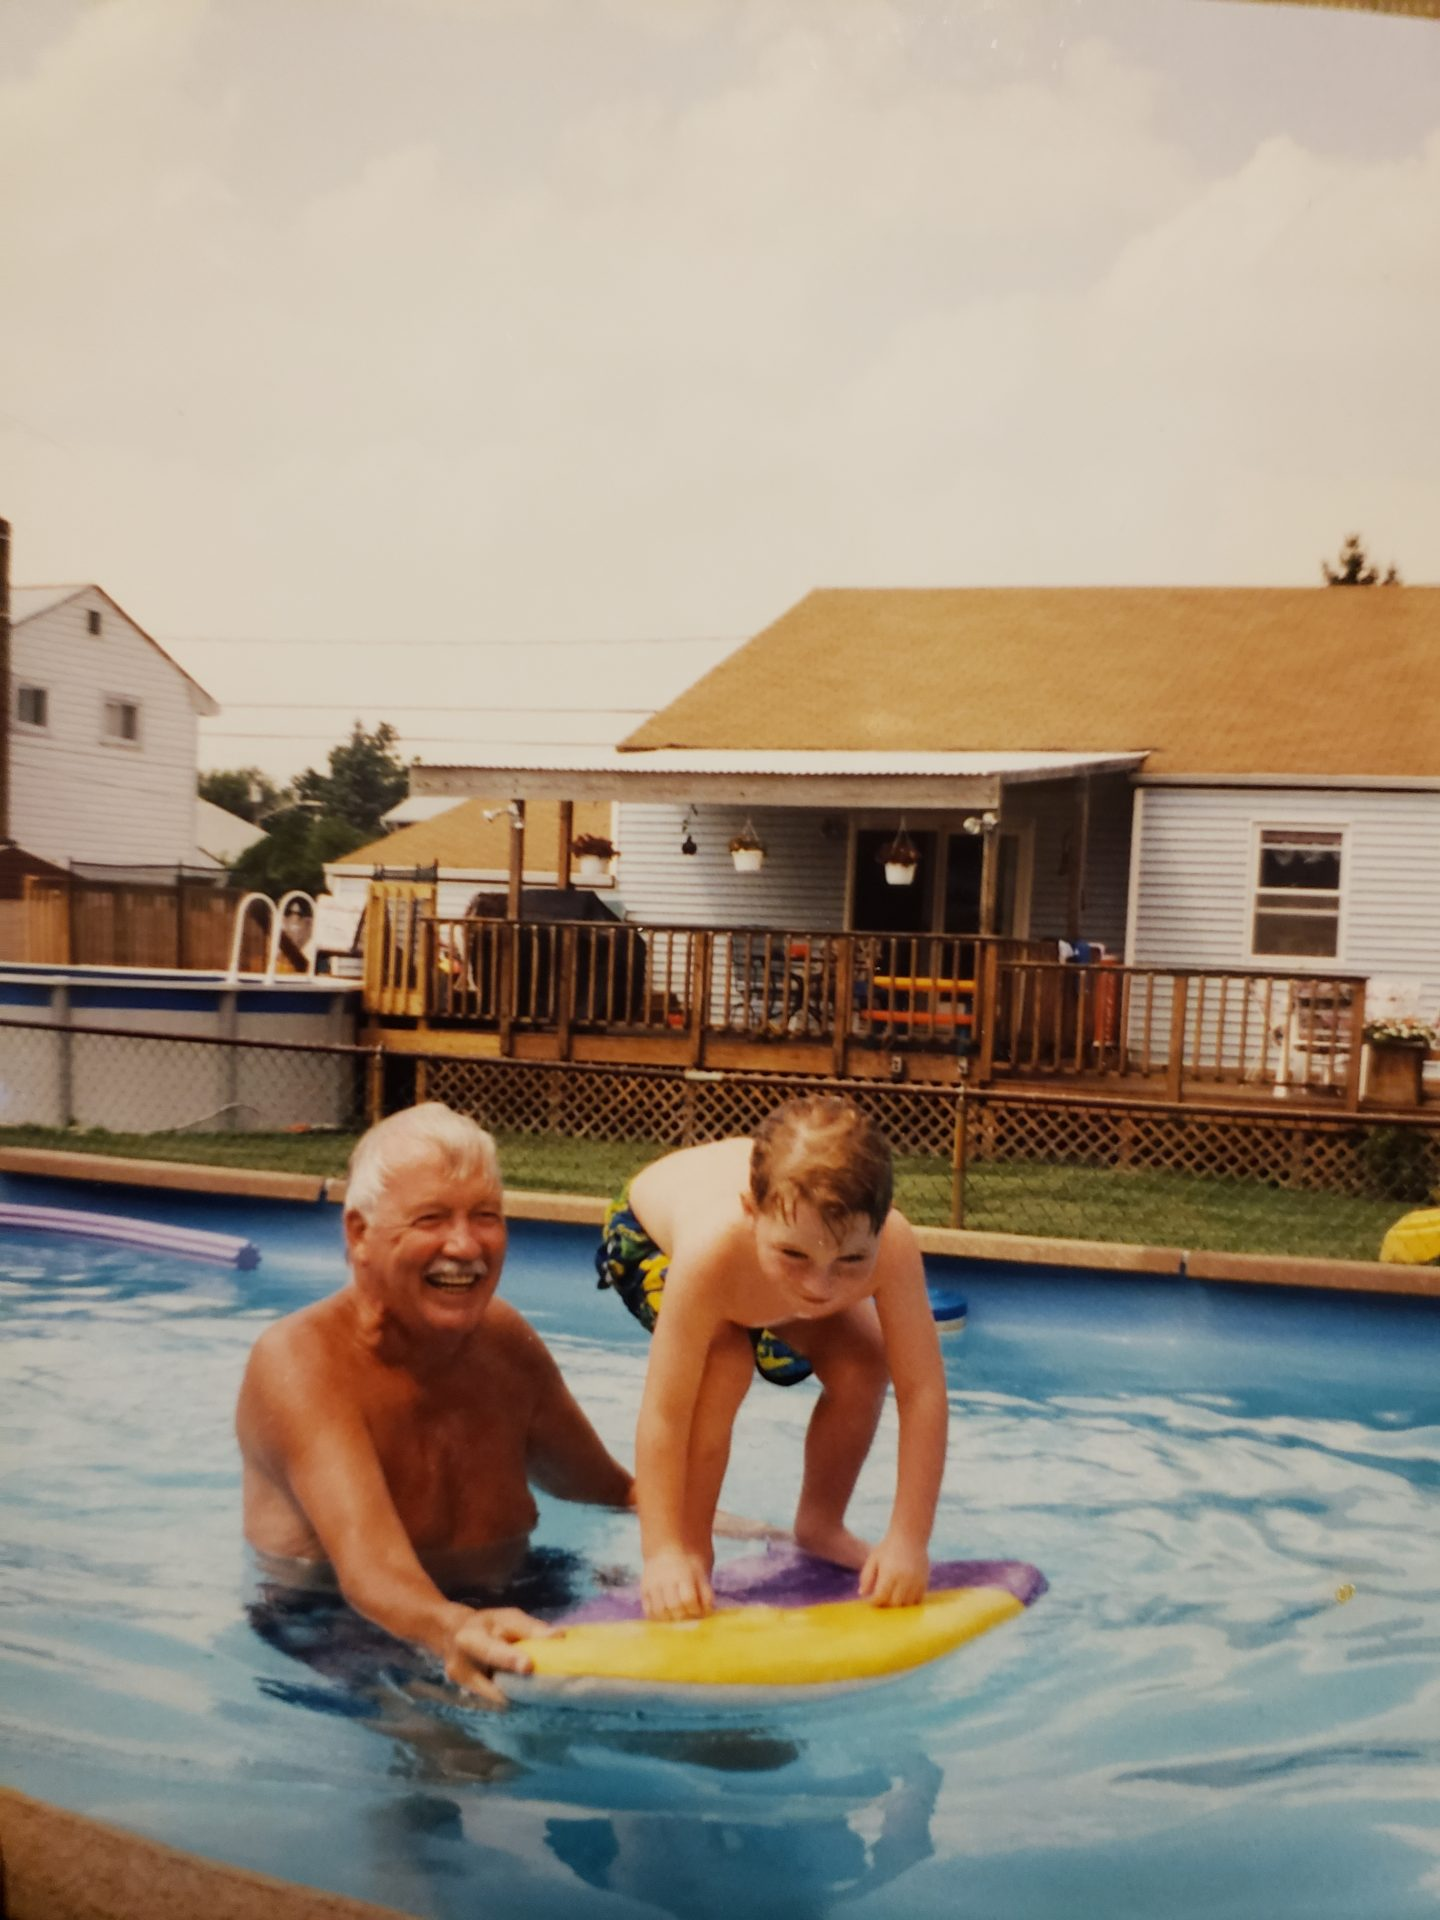 Trying to teach Patrick how to surf, In a pool.